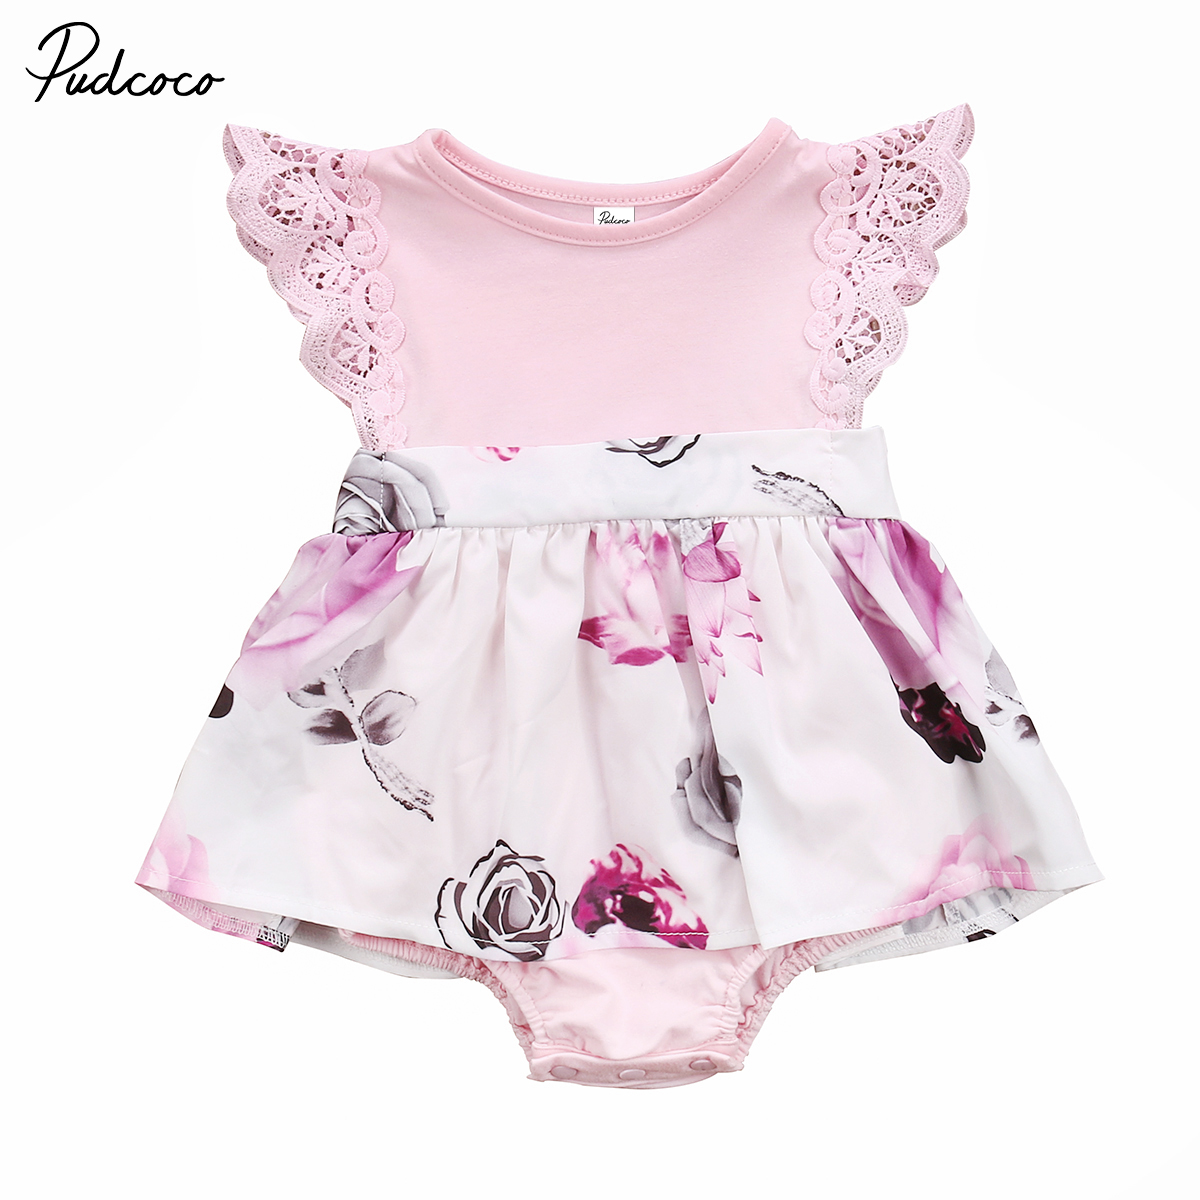 Cute Toddler Kids Girl Newborn Baby Sisters Floral Dress Romper Sundress Clothes Family Matching Clothing Set